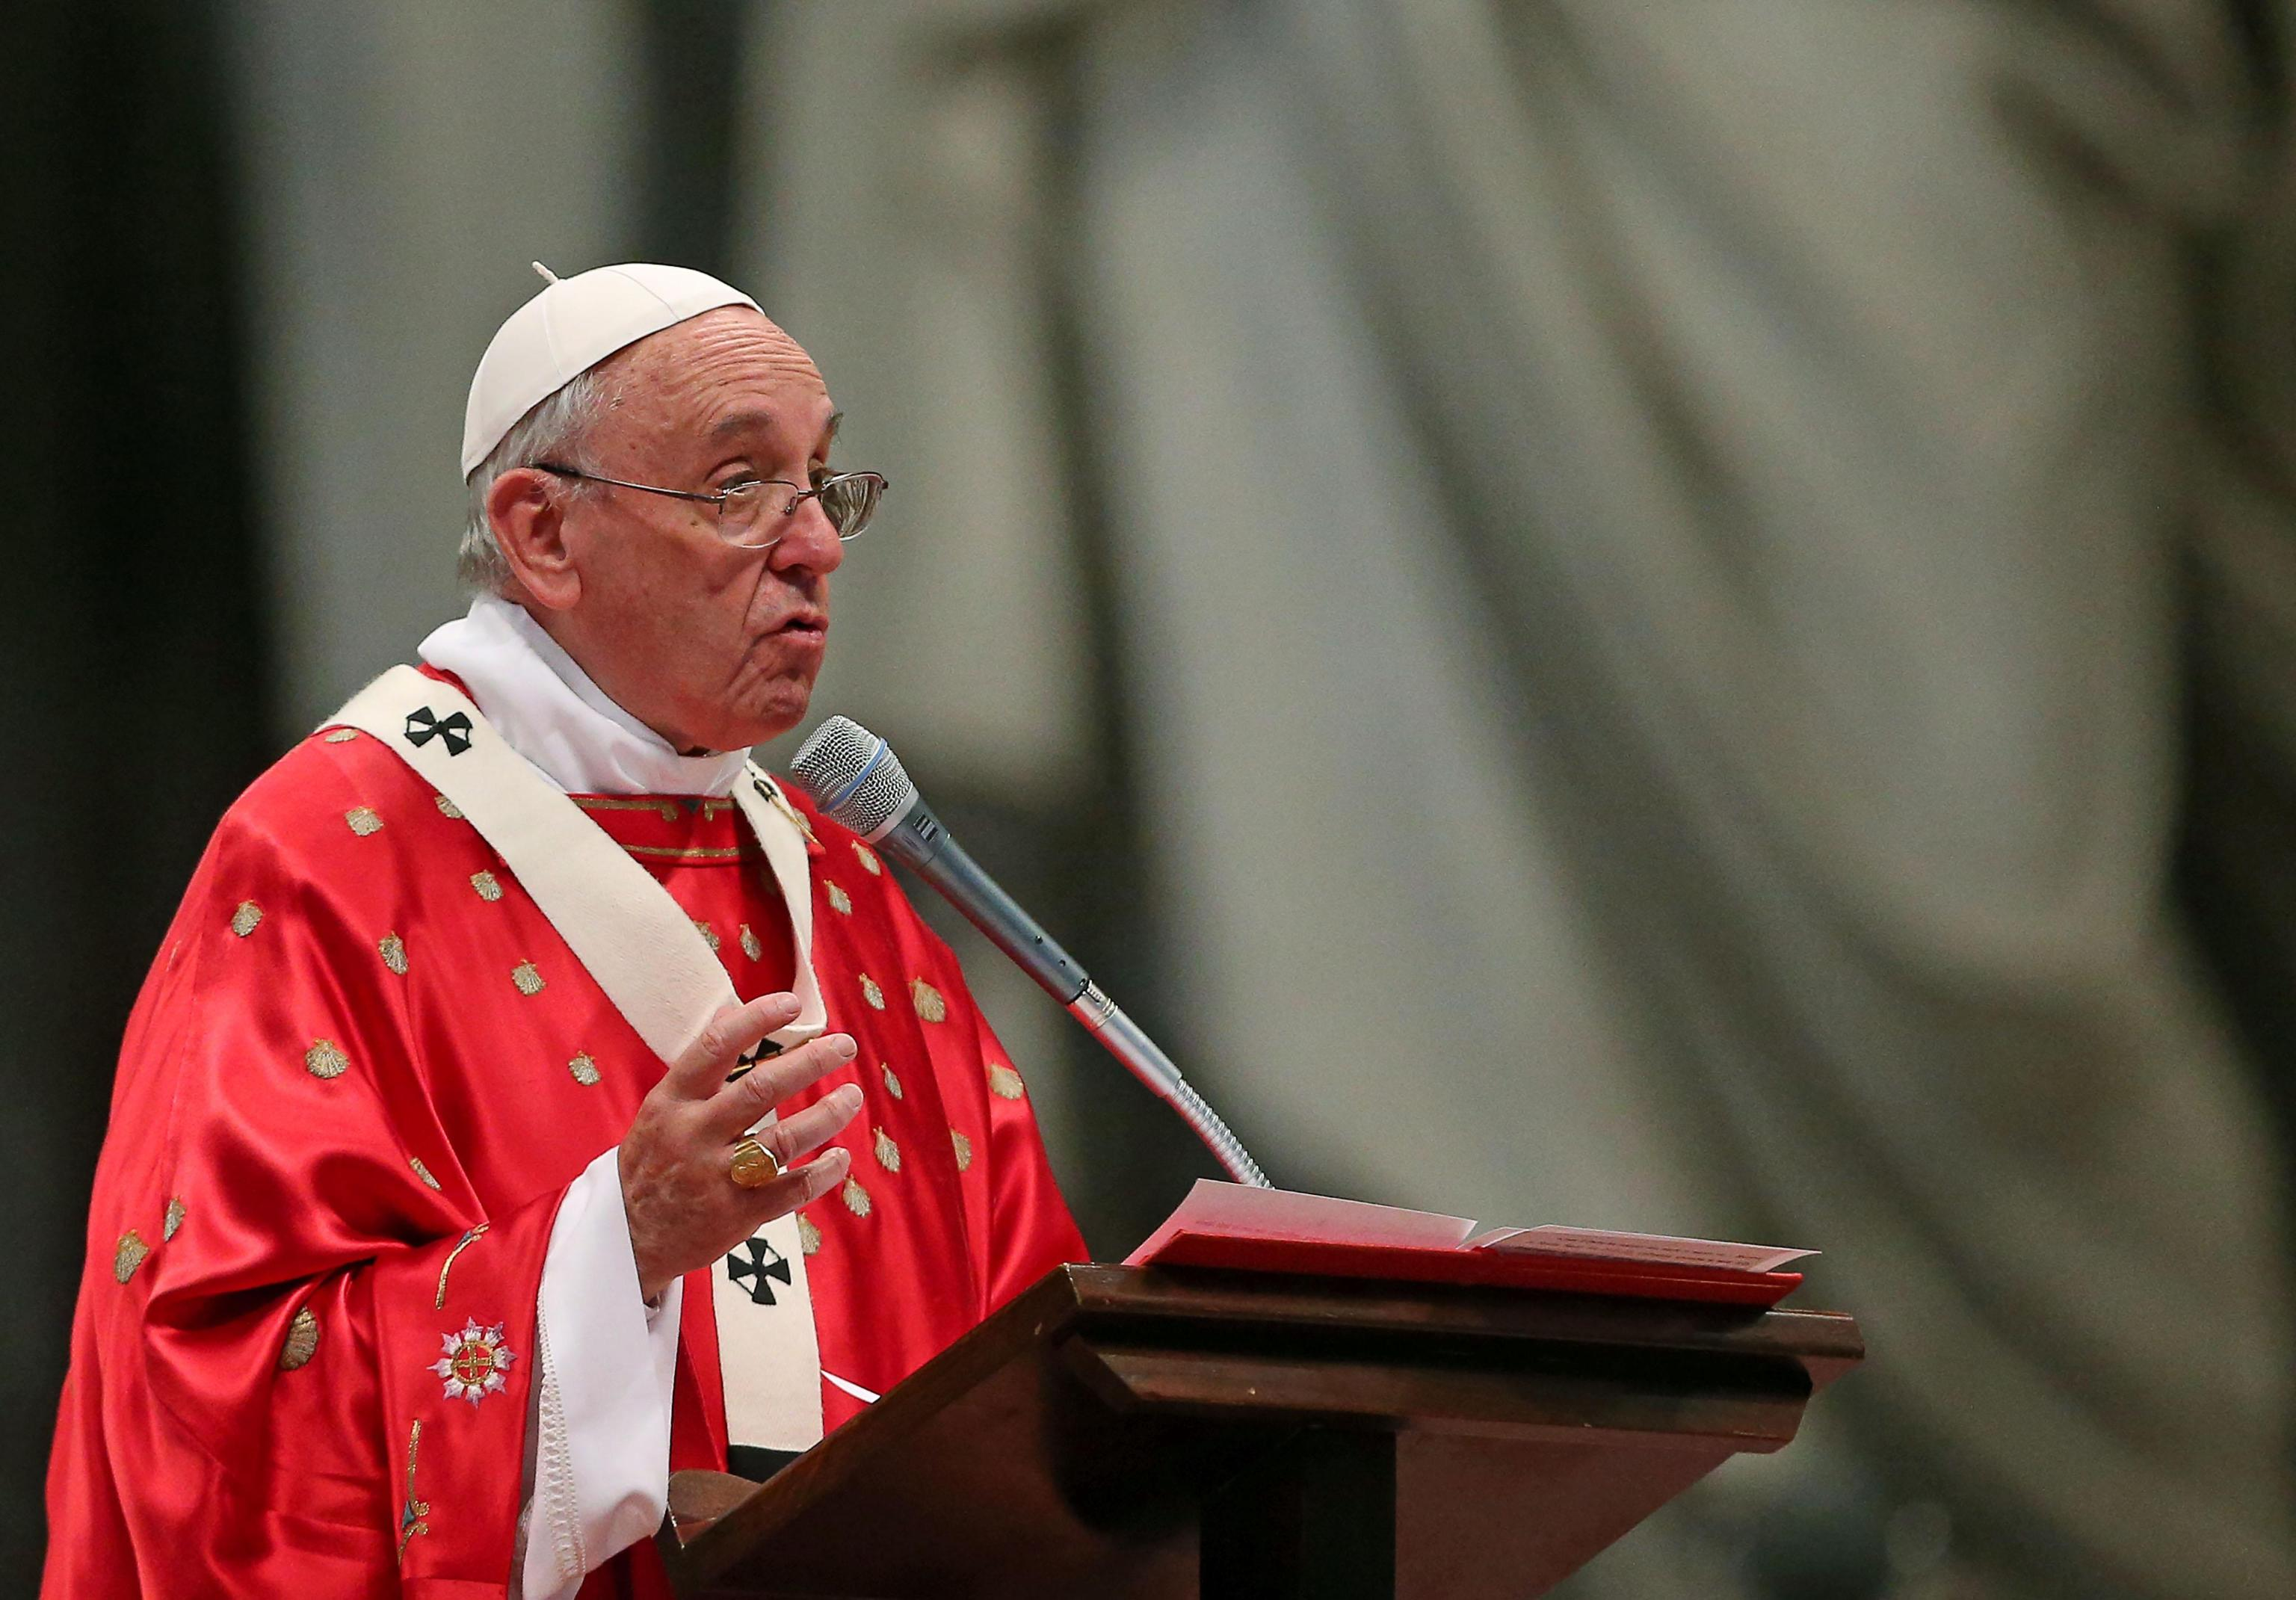 Pope Francis celebrates Pentecost Sunday in the St. Peter's Basilica in Rome